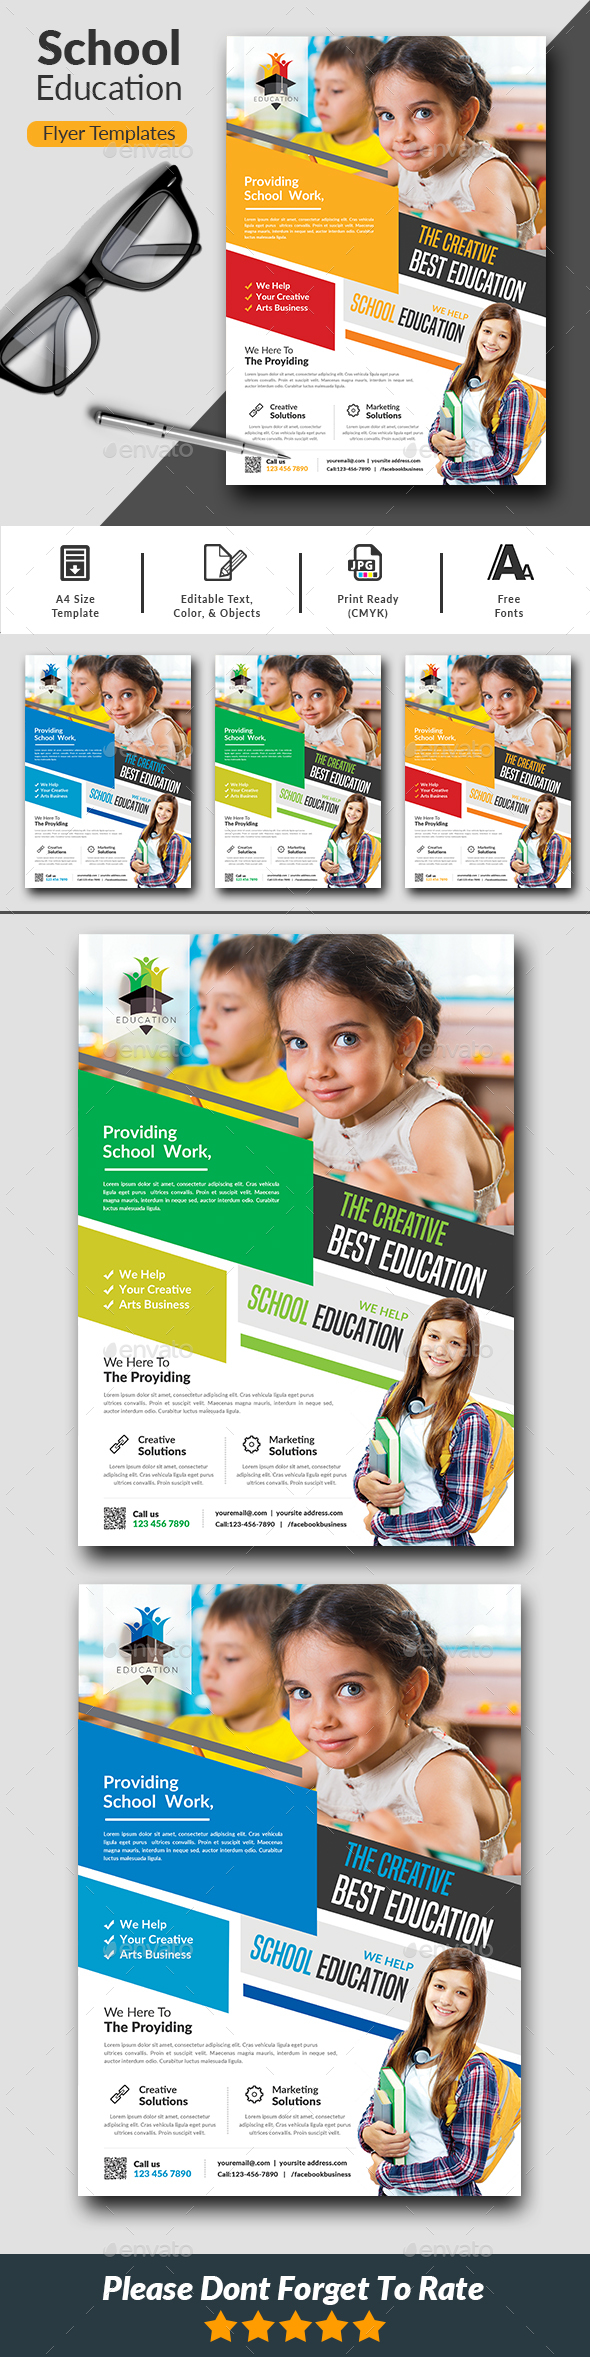 School Education Flyer Templates - Corporate Flyers